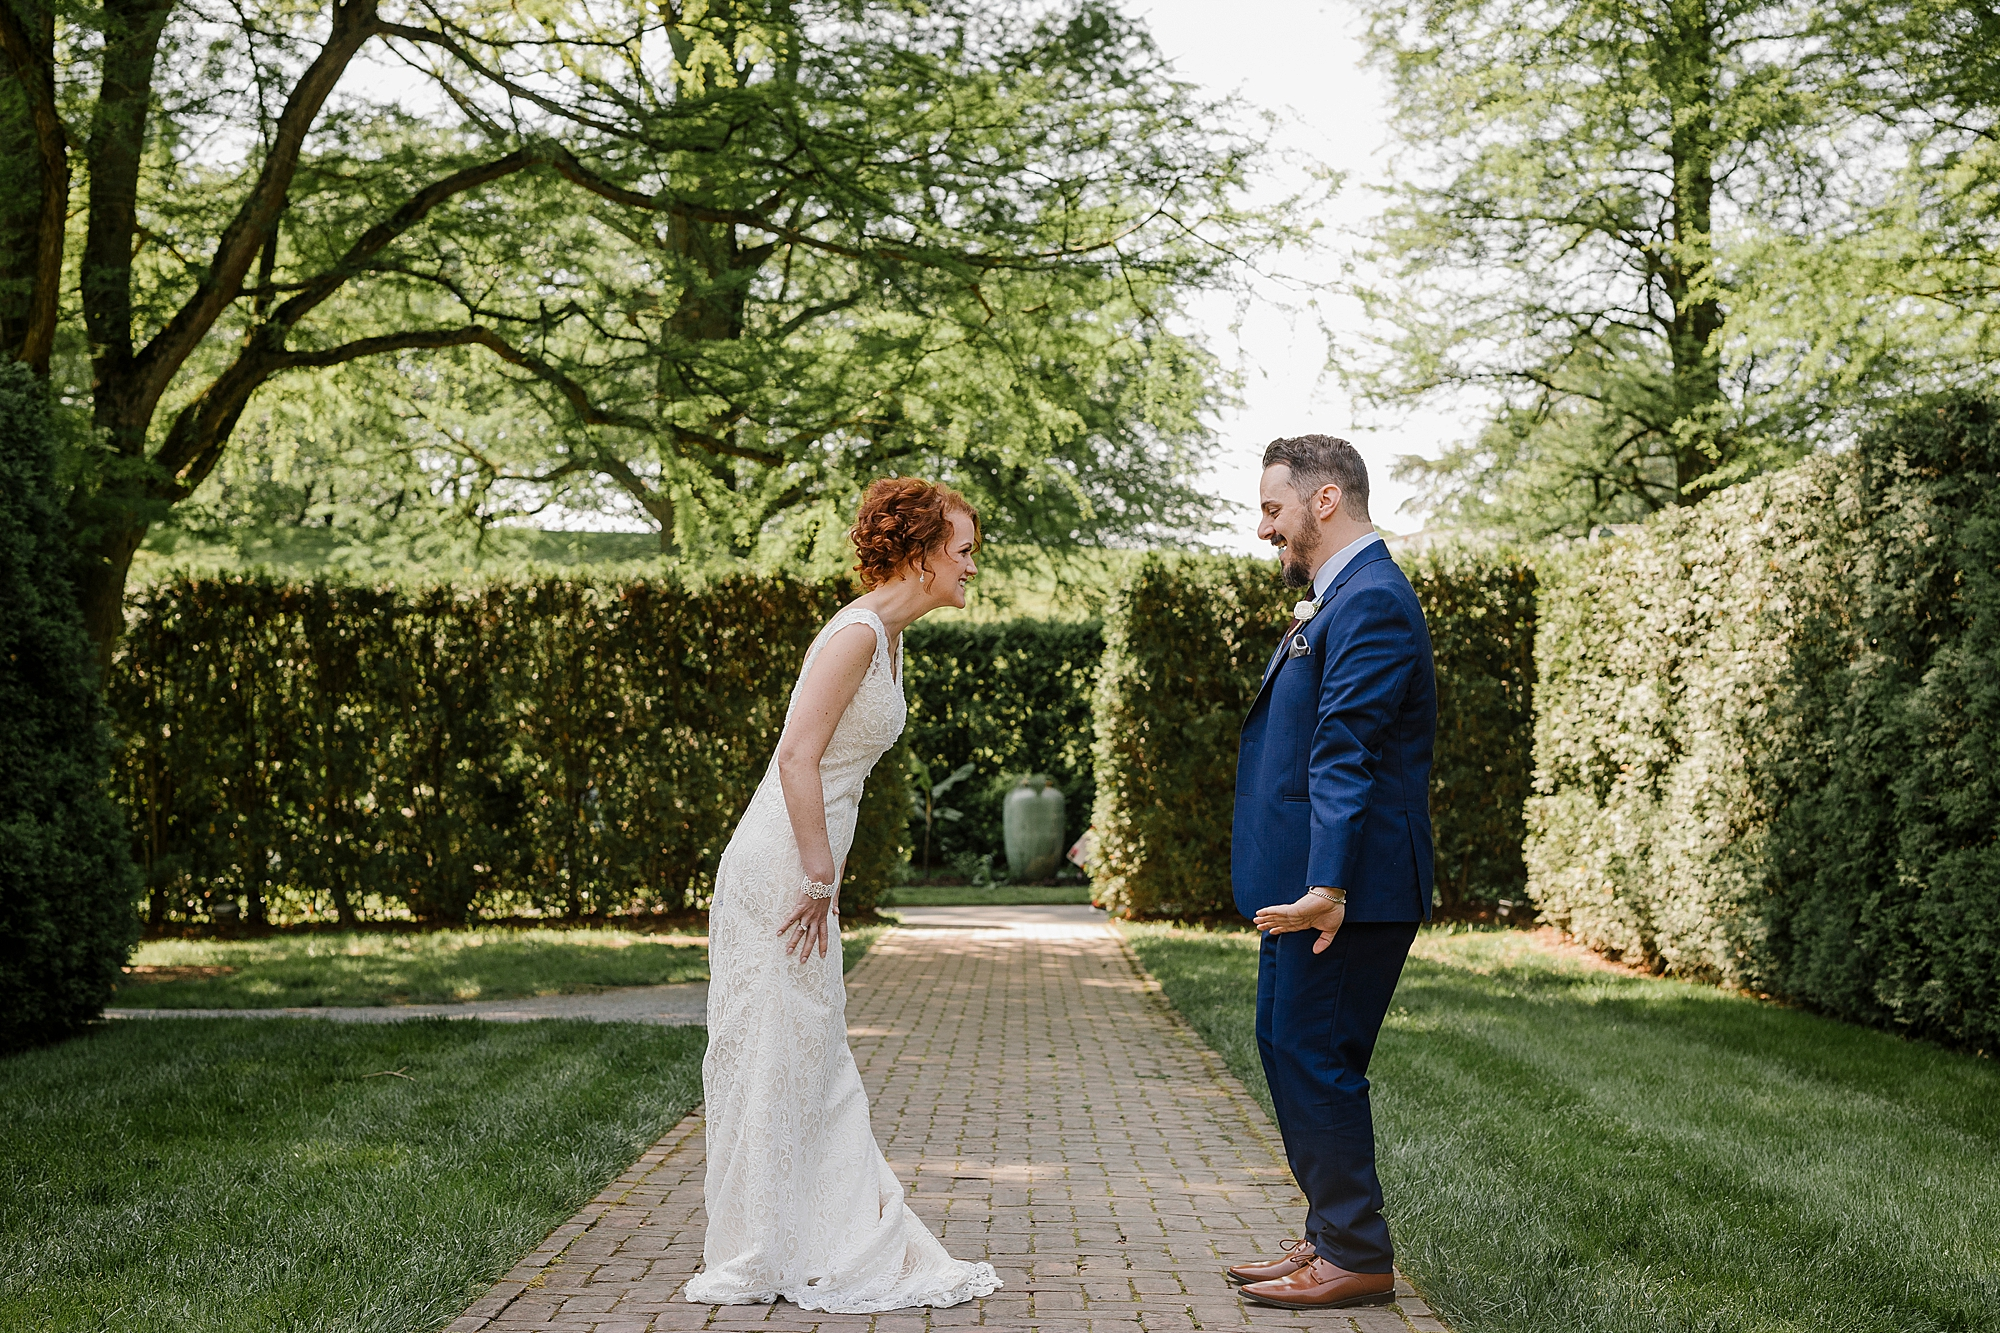 Megan and Daniel_Northbrook_Marketplace_Longwood_Gardens_Chester_County_Unionville_Love_by_Joe_Mac_Wedding_photography__0032.jpg